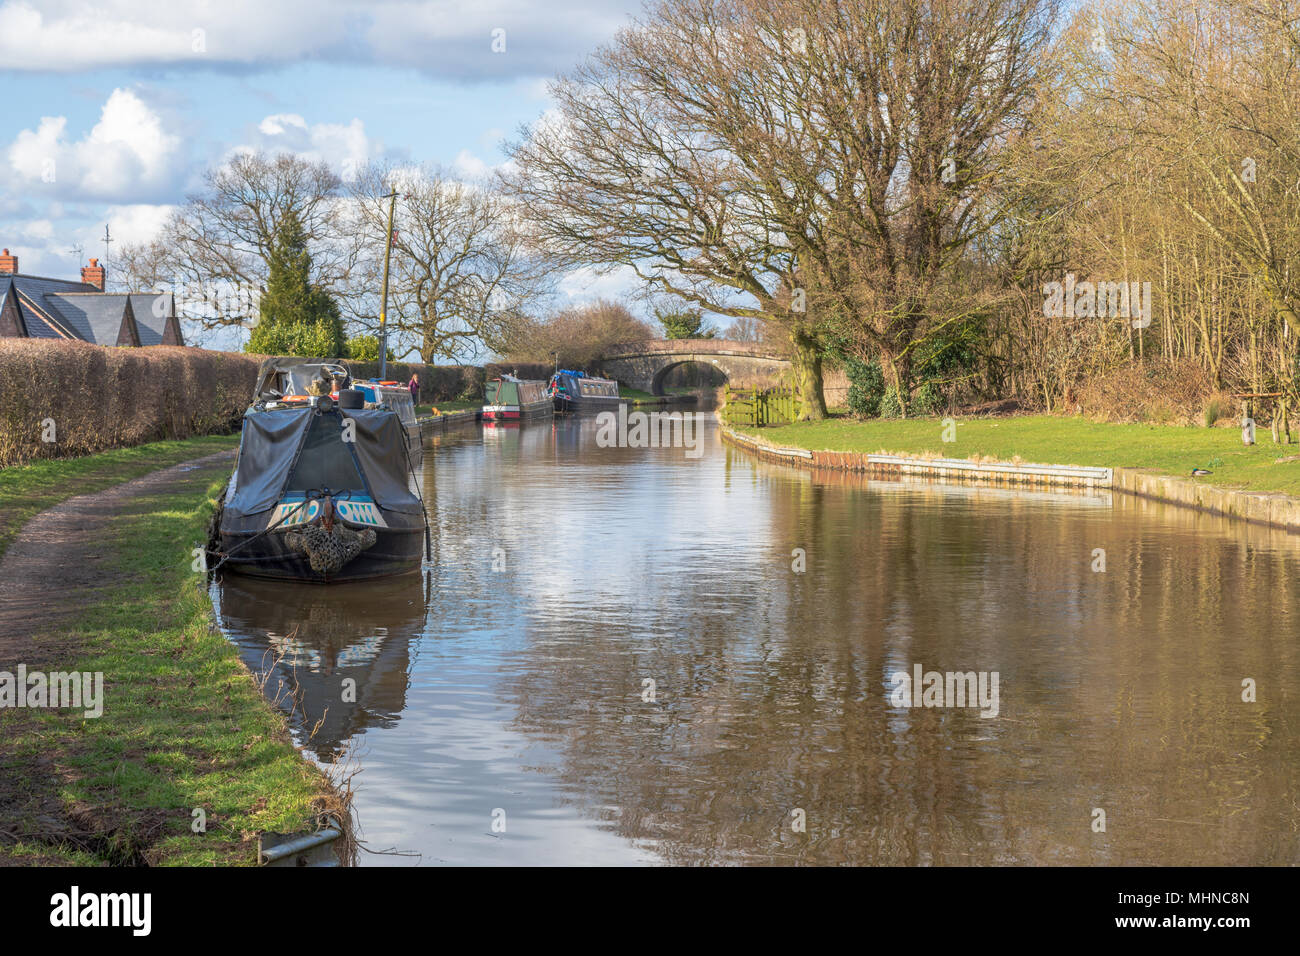 Narrow boats moored on the Macclesfield Canal near Bollington in  Cheshire.  The canal is a popular waterway used by visitors to Cheshire - Stock Image